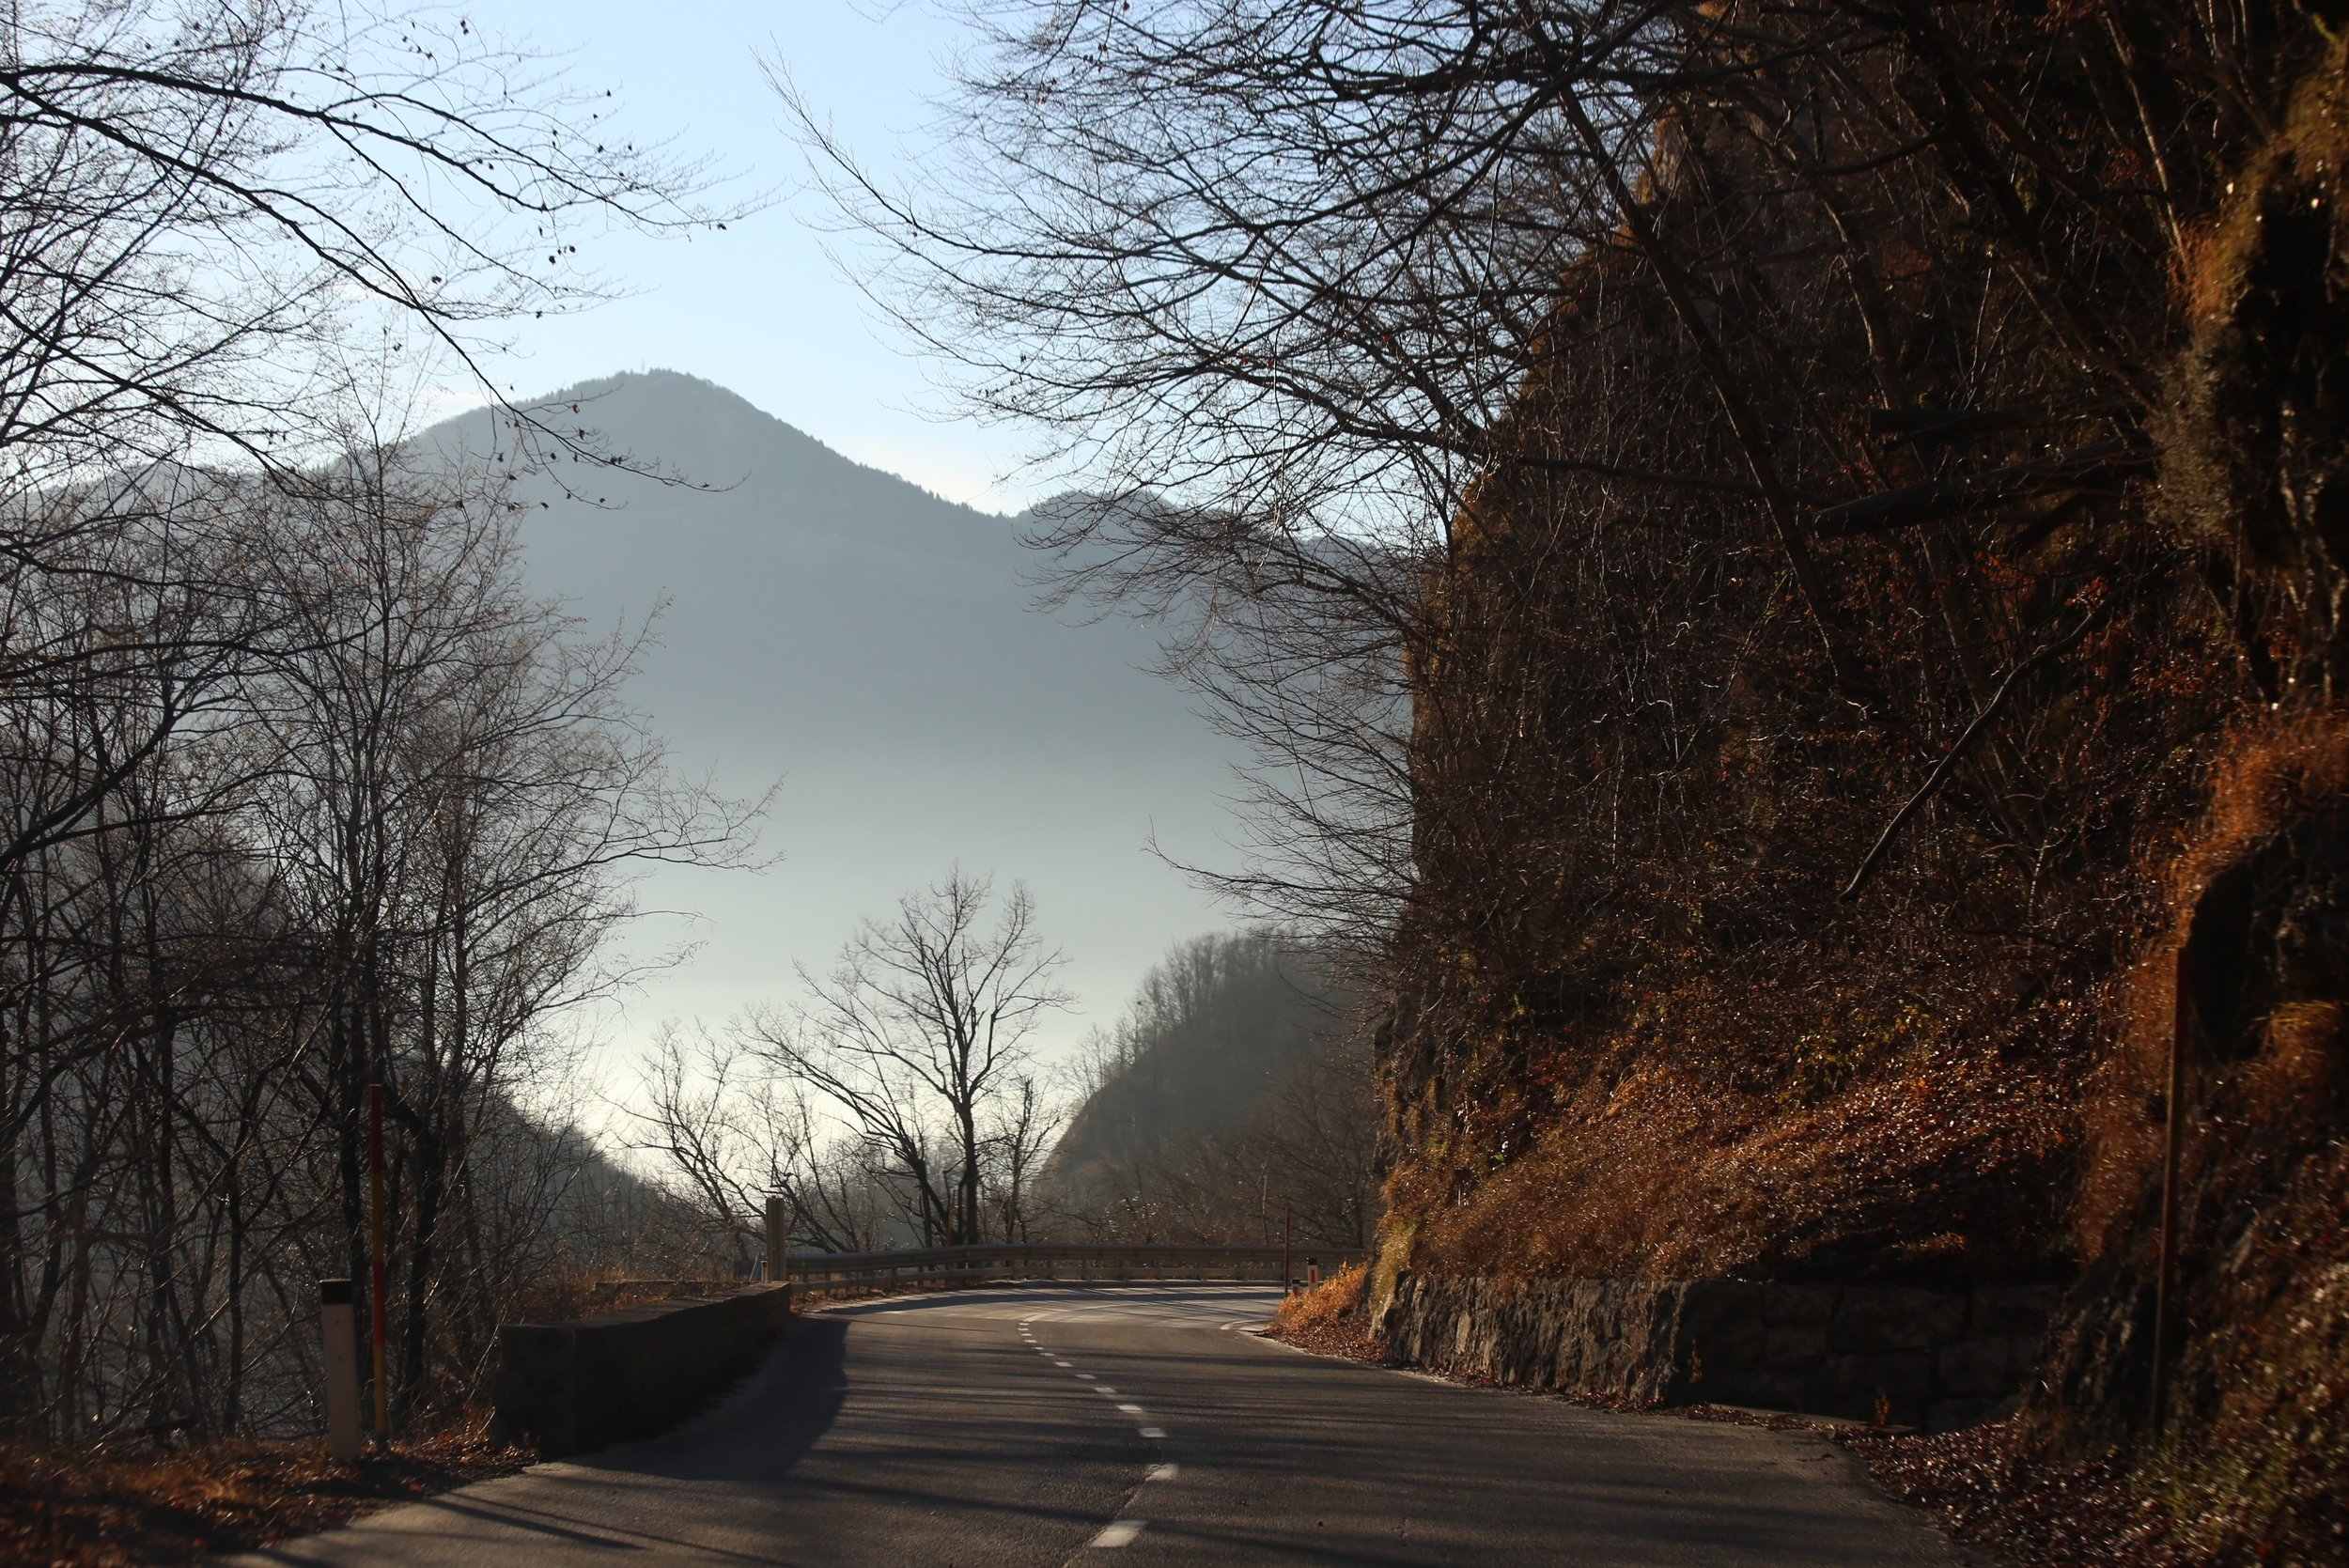 The road to Lake Bled, a windy one in the mountains of Slovenia.